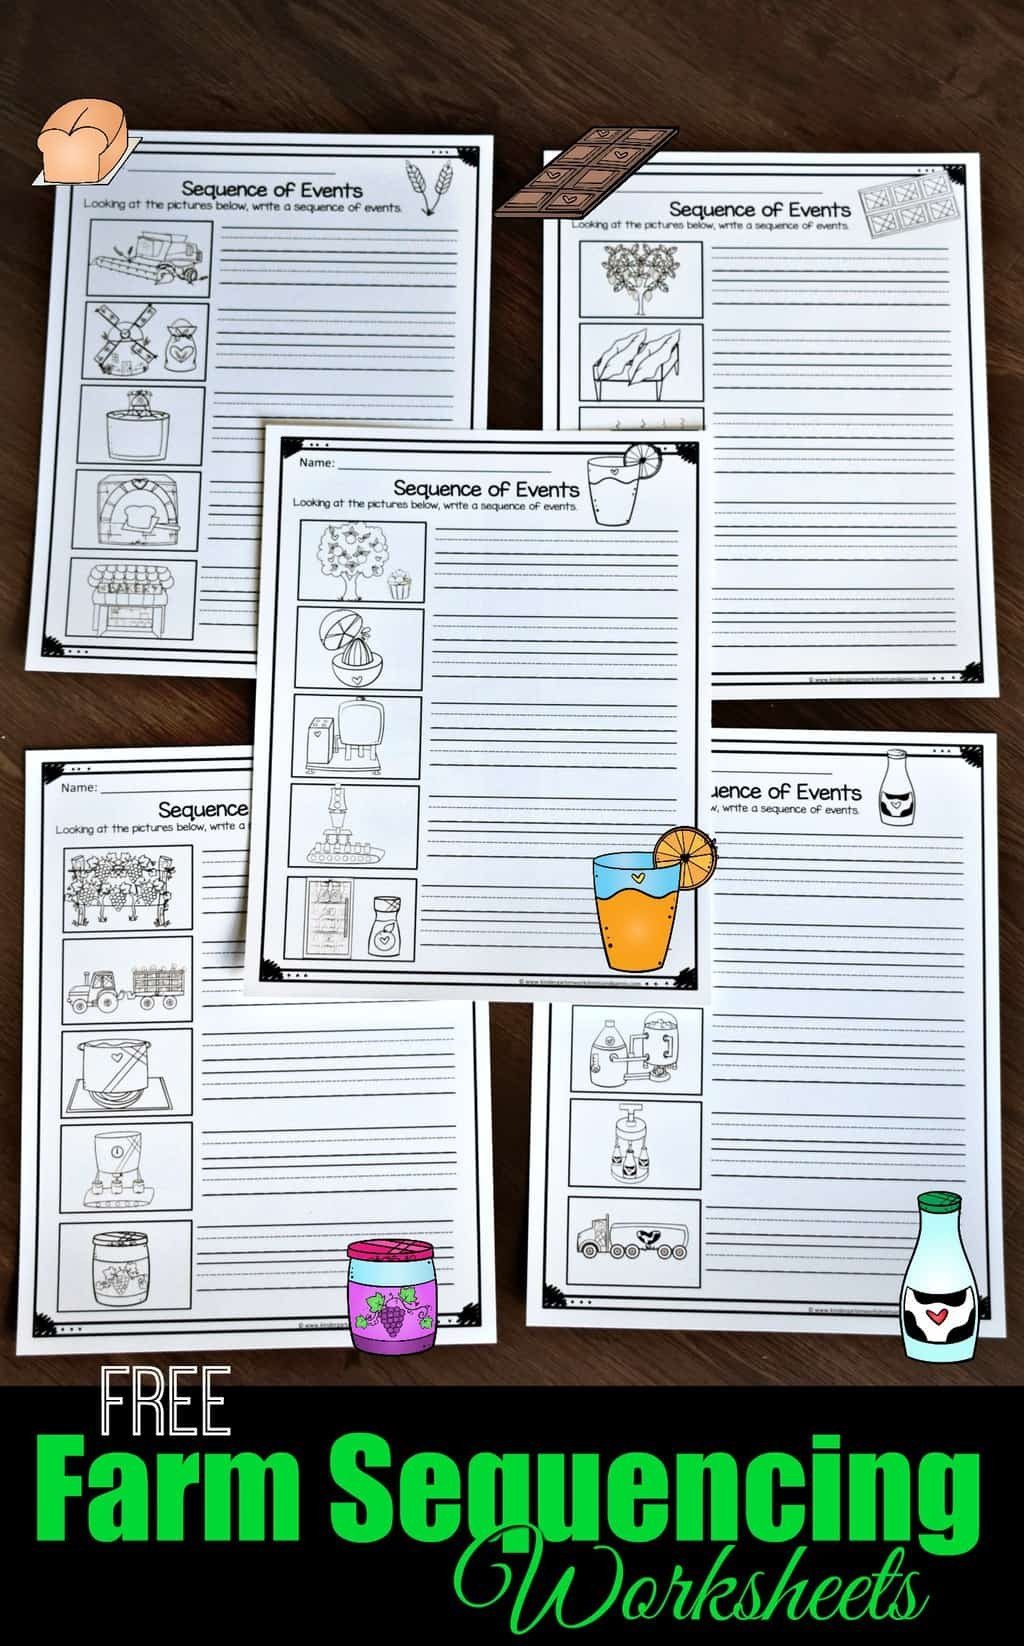 Sequencing events Worksheet Free Farm Sequencing Worksheets